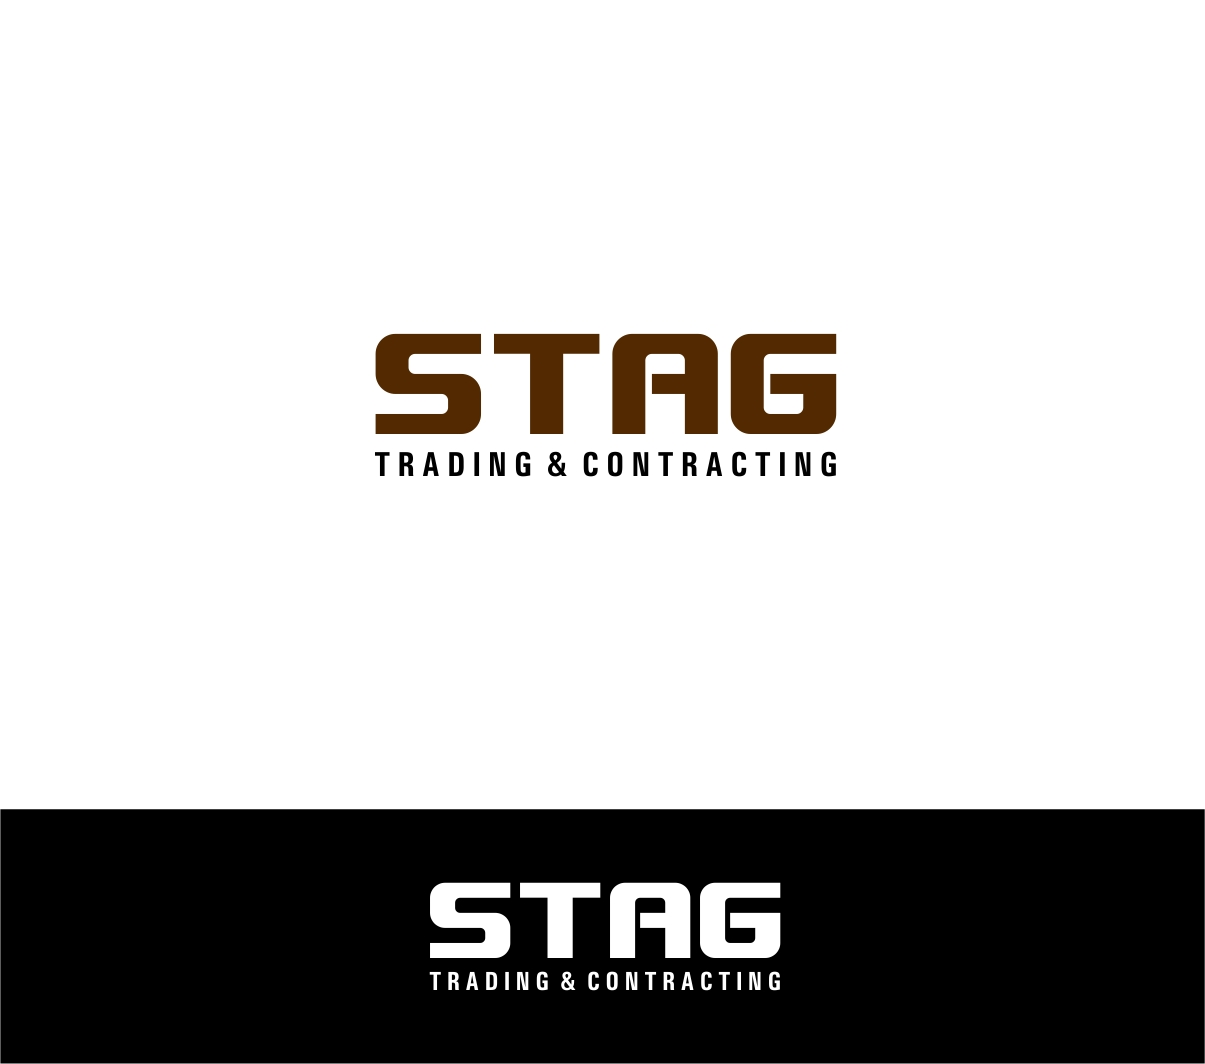 Logo Design by haidu - Entry No. 242 in the Logo Design Contest Captivating Logo Design for STAG Trading & Contracting.